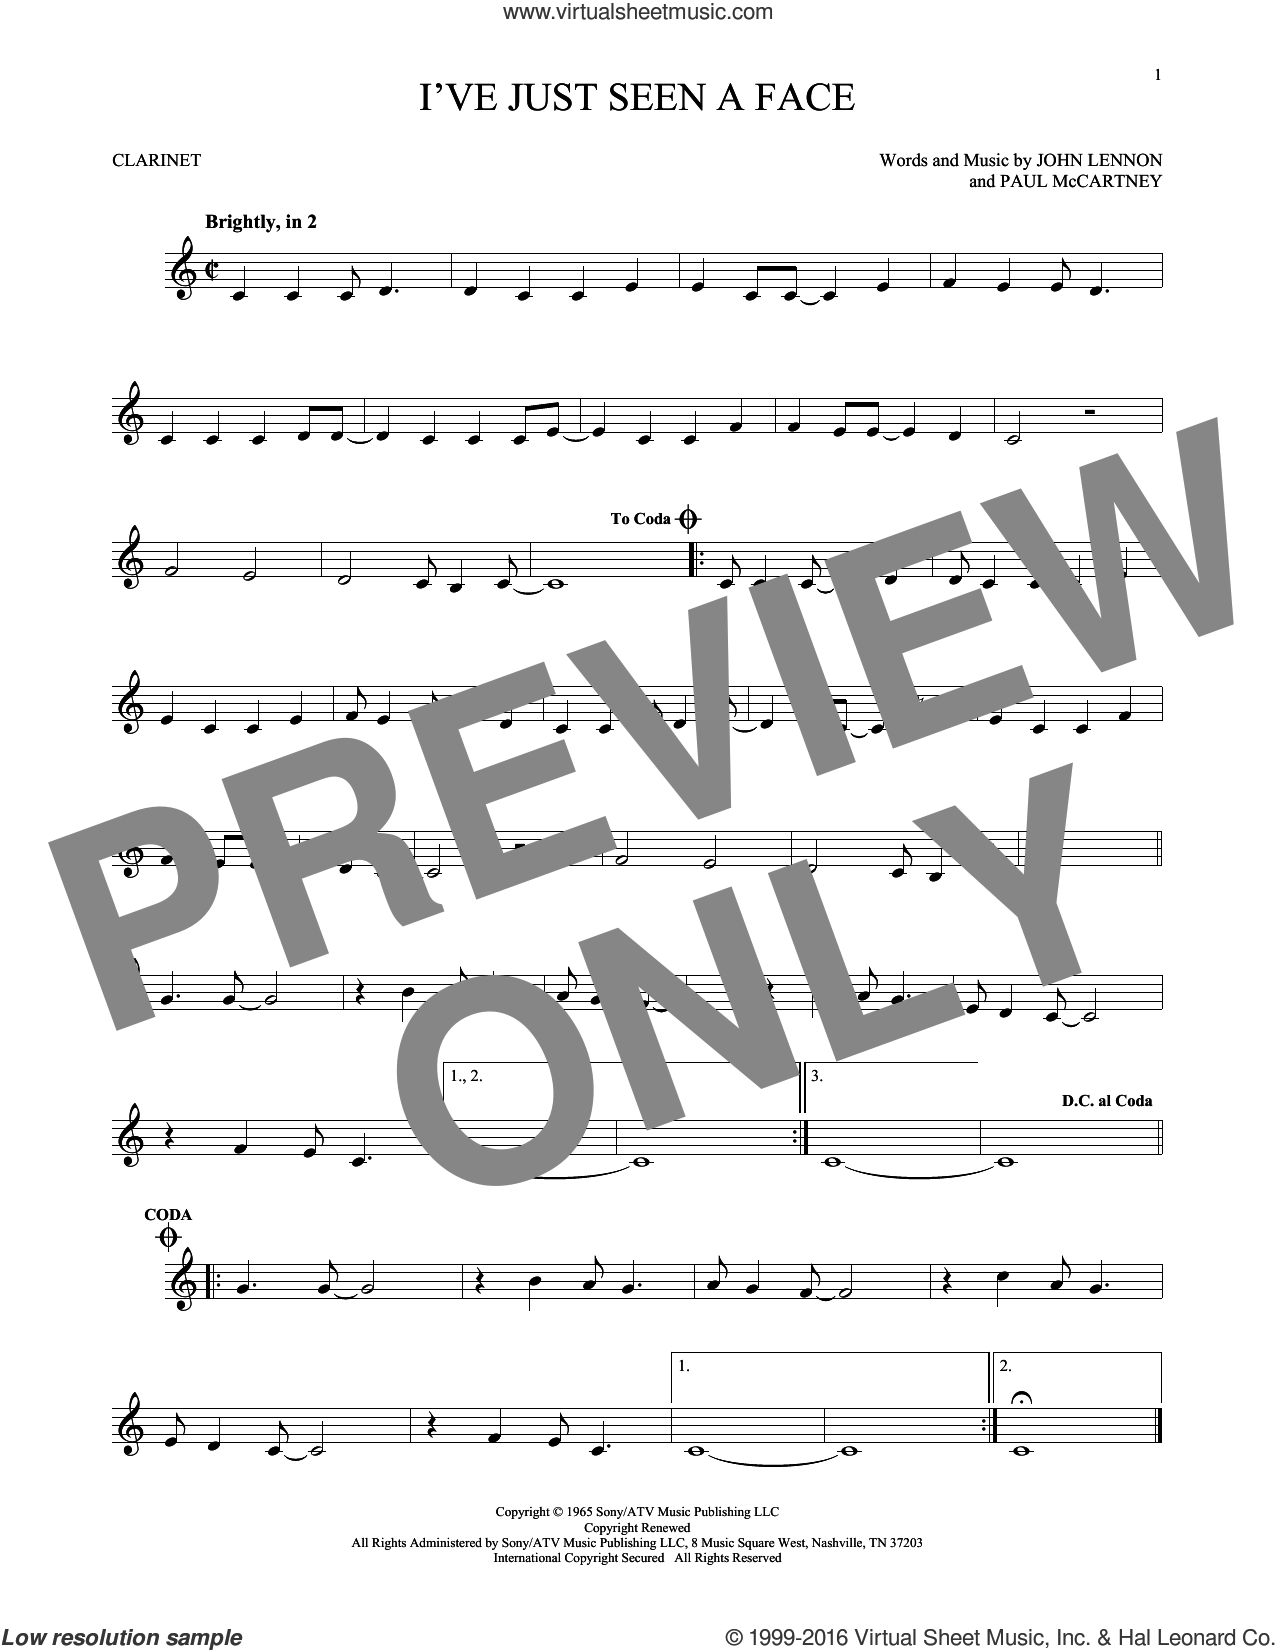 I've Just Seen A Face sheet music for clarinet solo by The Beatles, John Lennon and Paul McCartney, intermediate skill level